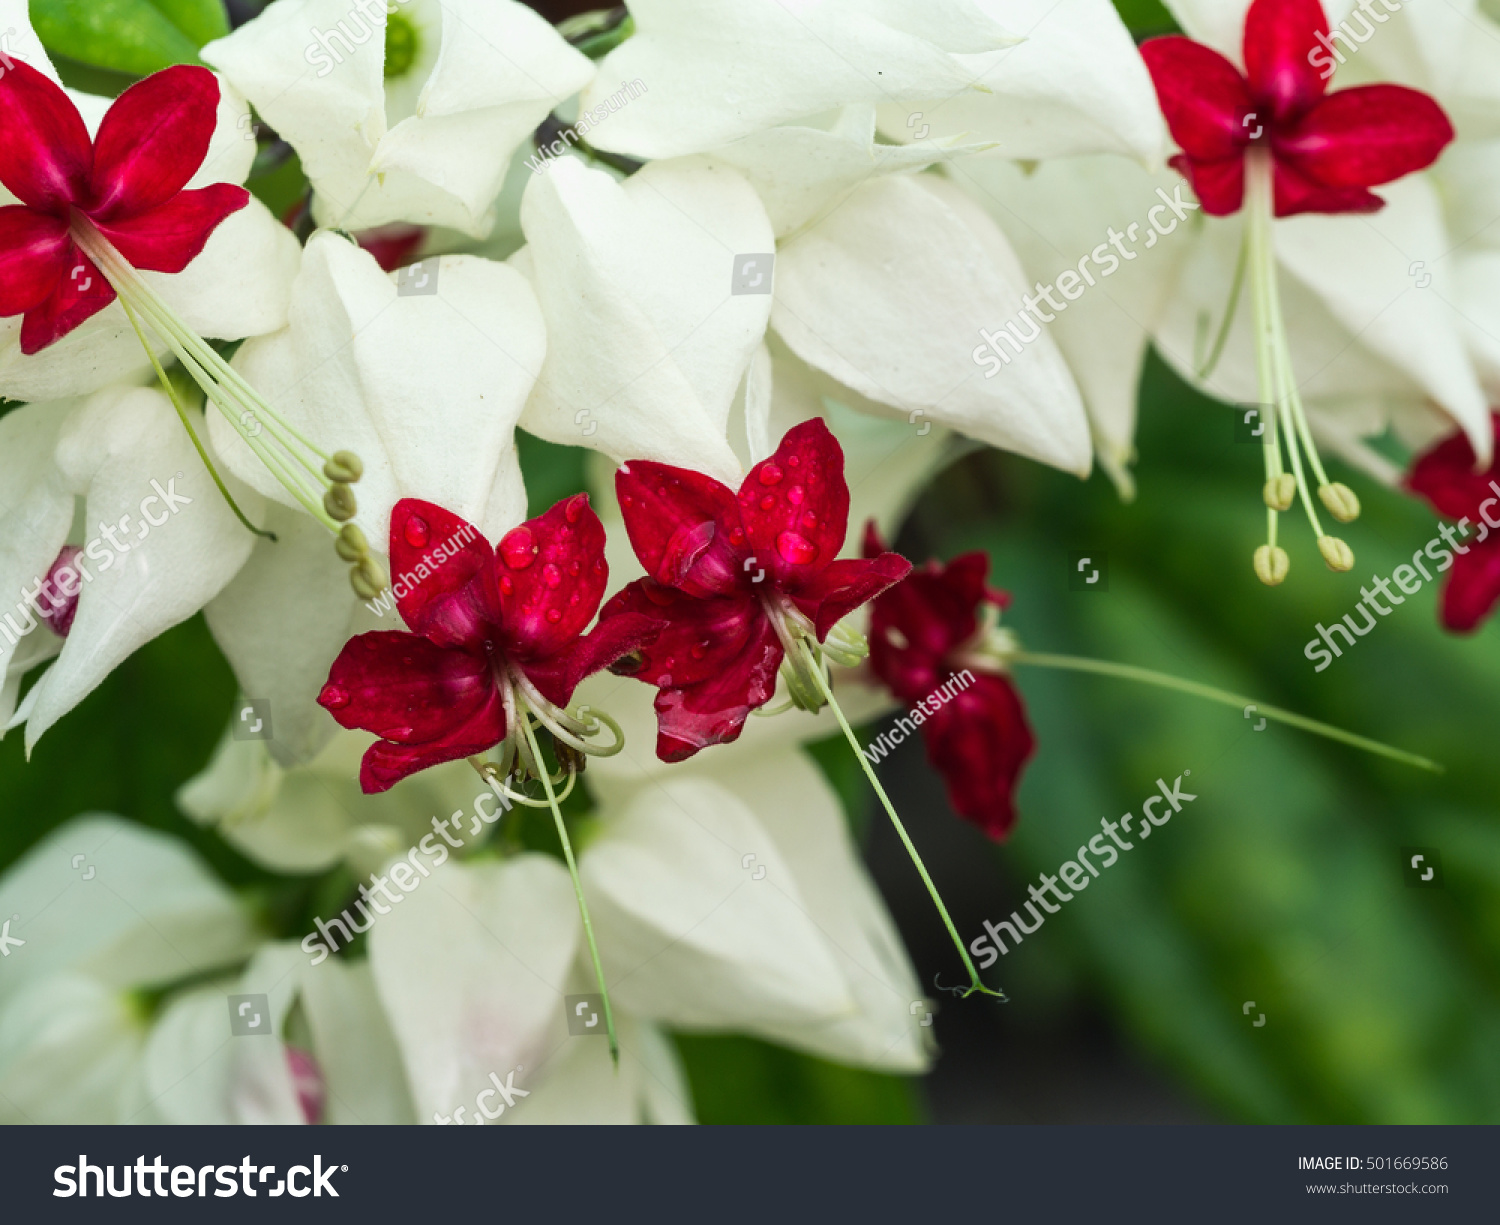 Rain drop on white bleeding heart stock photo royalty free rain drop on white bleeding heart stock photo royalty free 501669586 shutterstock izmirmasajfo